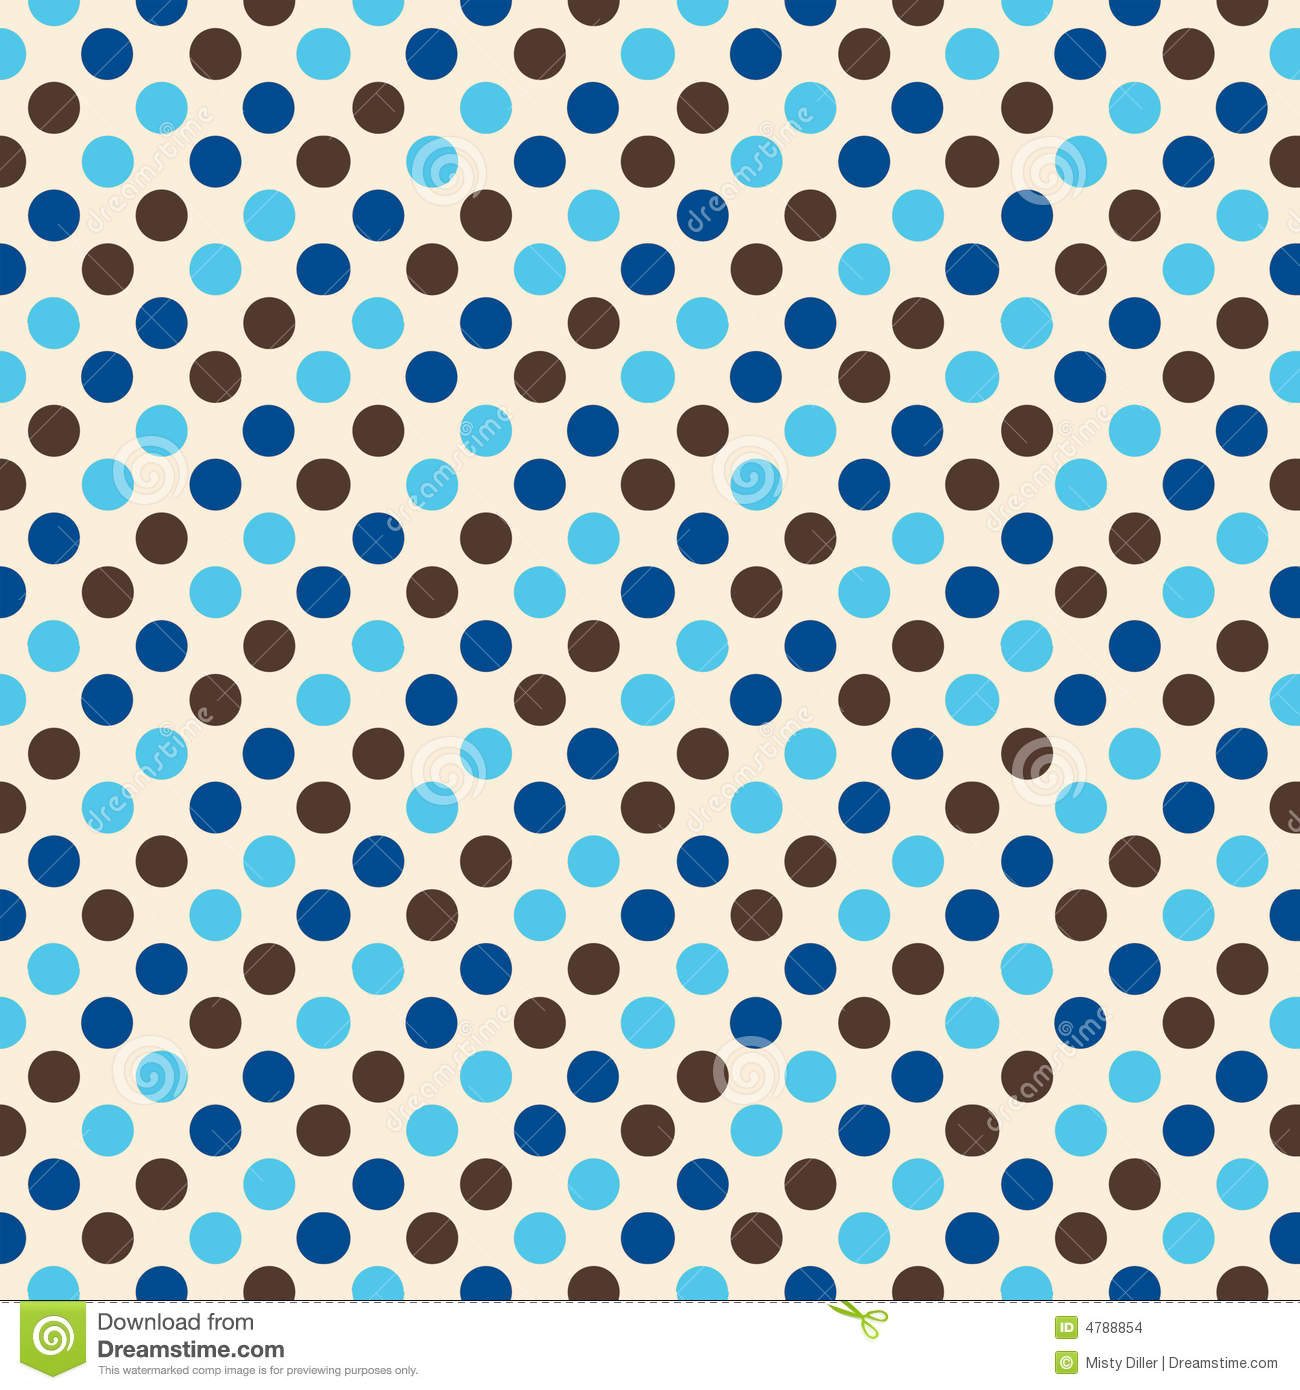 Blue and brown polka dots wallpaper images amp pictures becuo